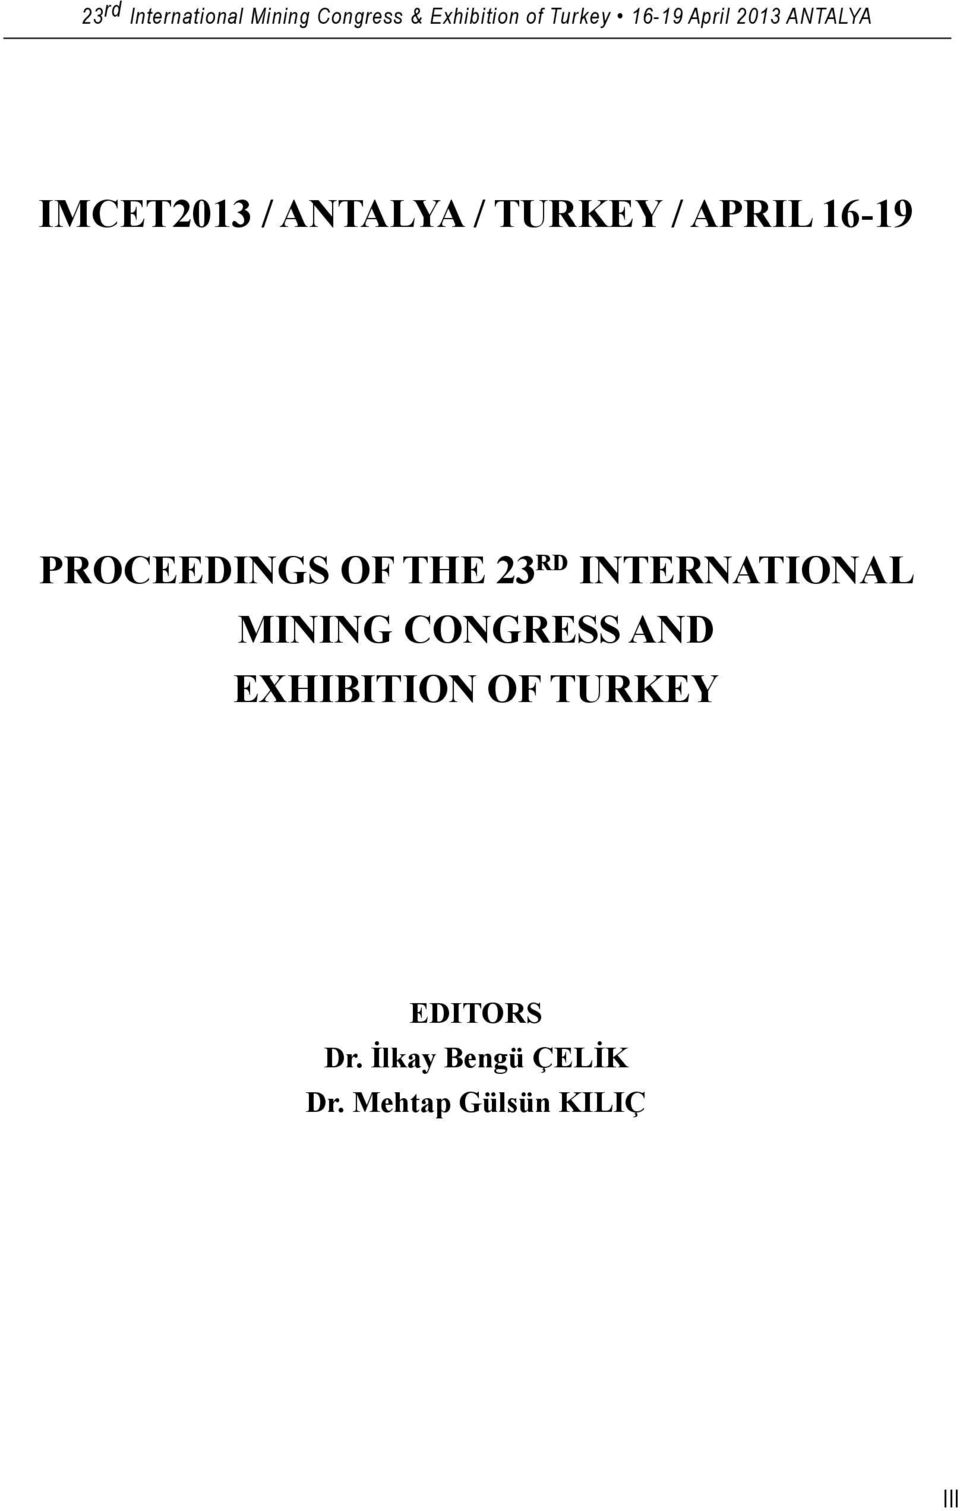 MINING CONGRESS AND EXHIBITION OF TURKEY